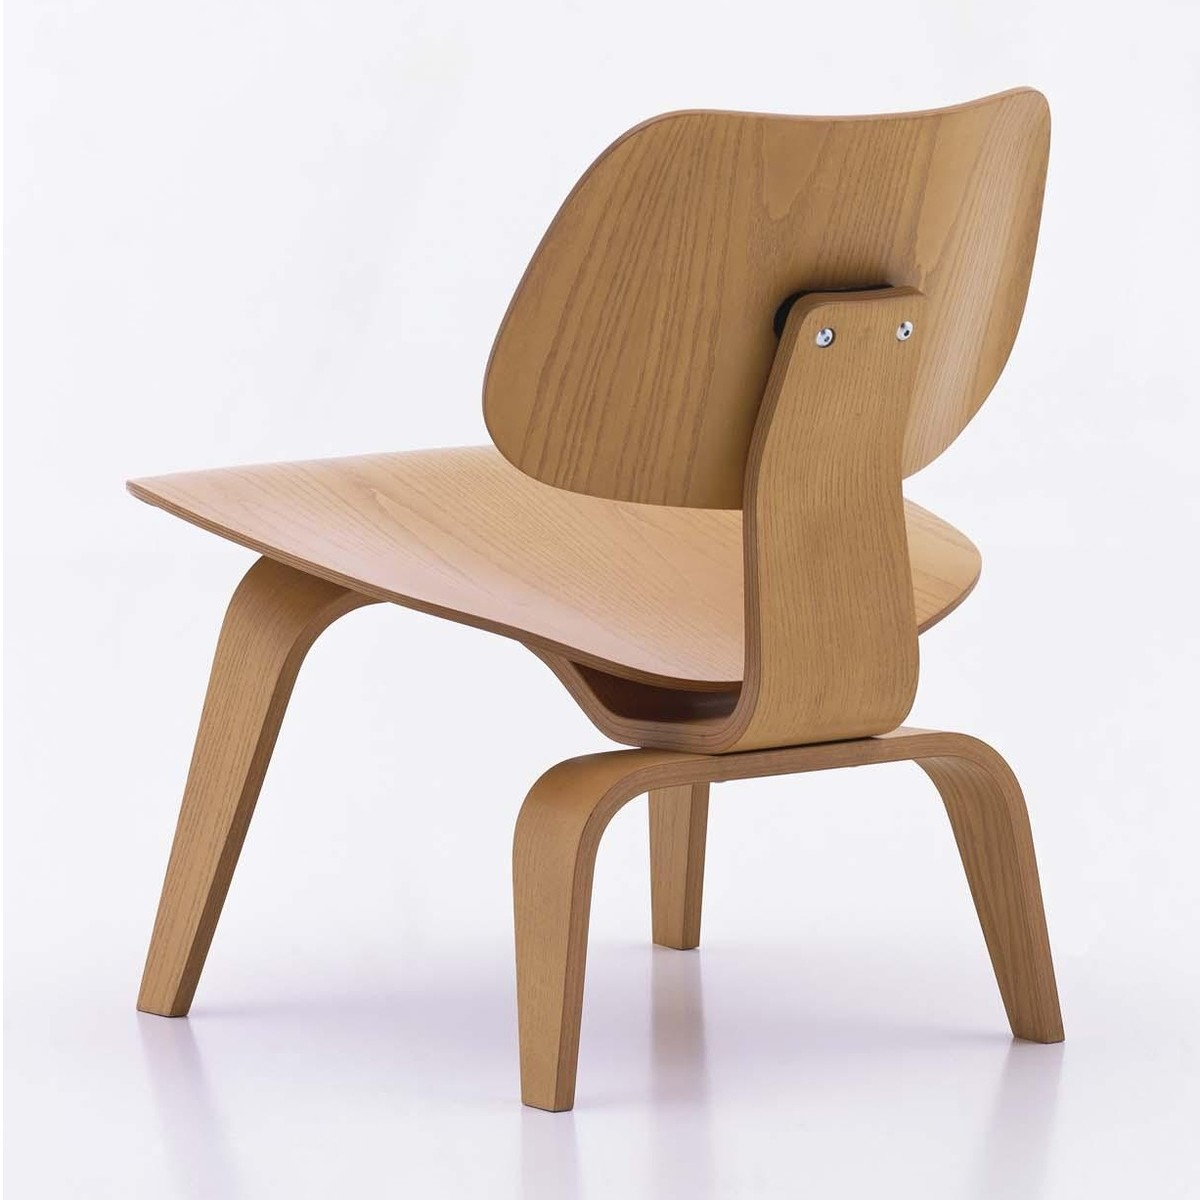 Lcw chaise vitra for Chaise eames vitra soldes